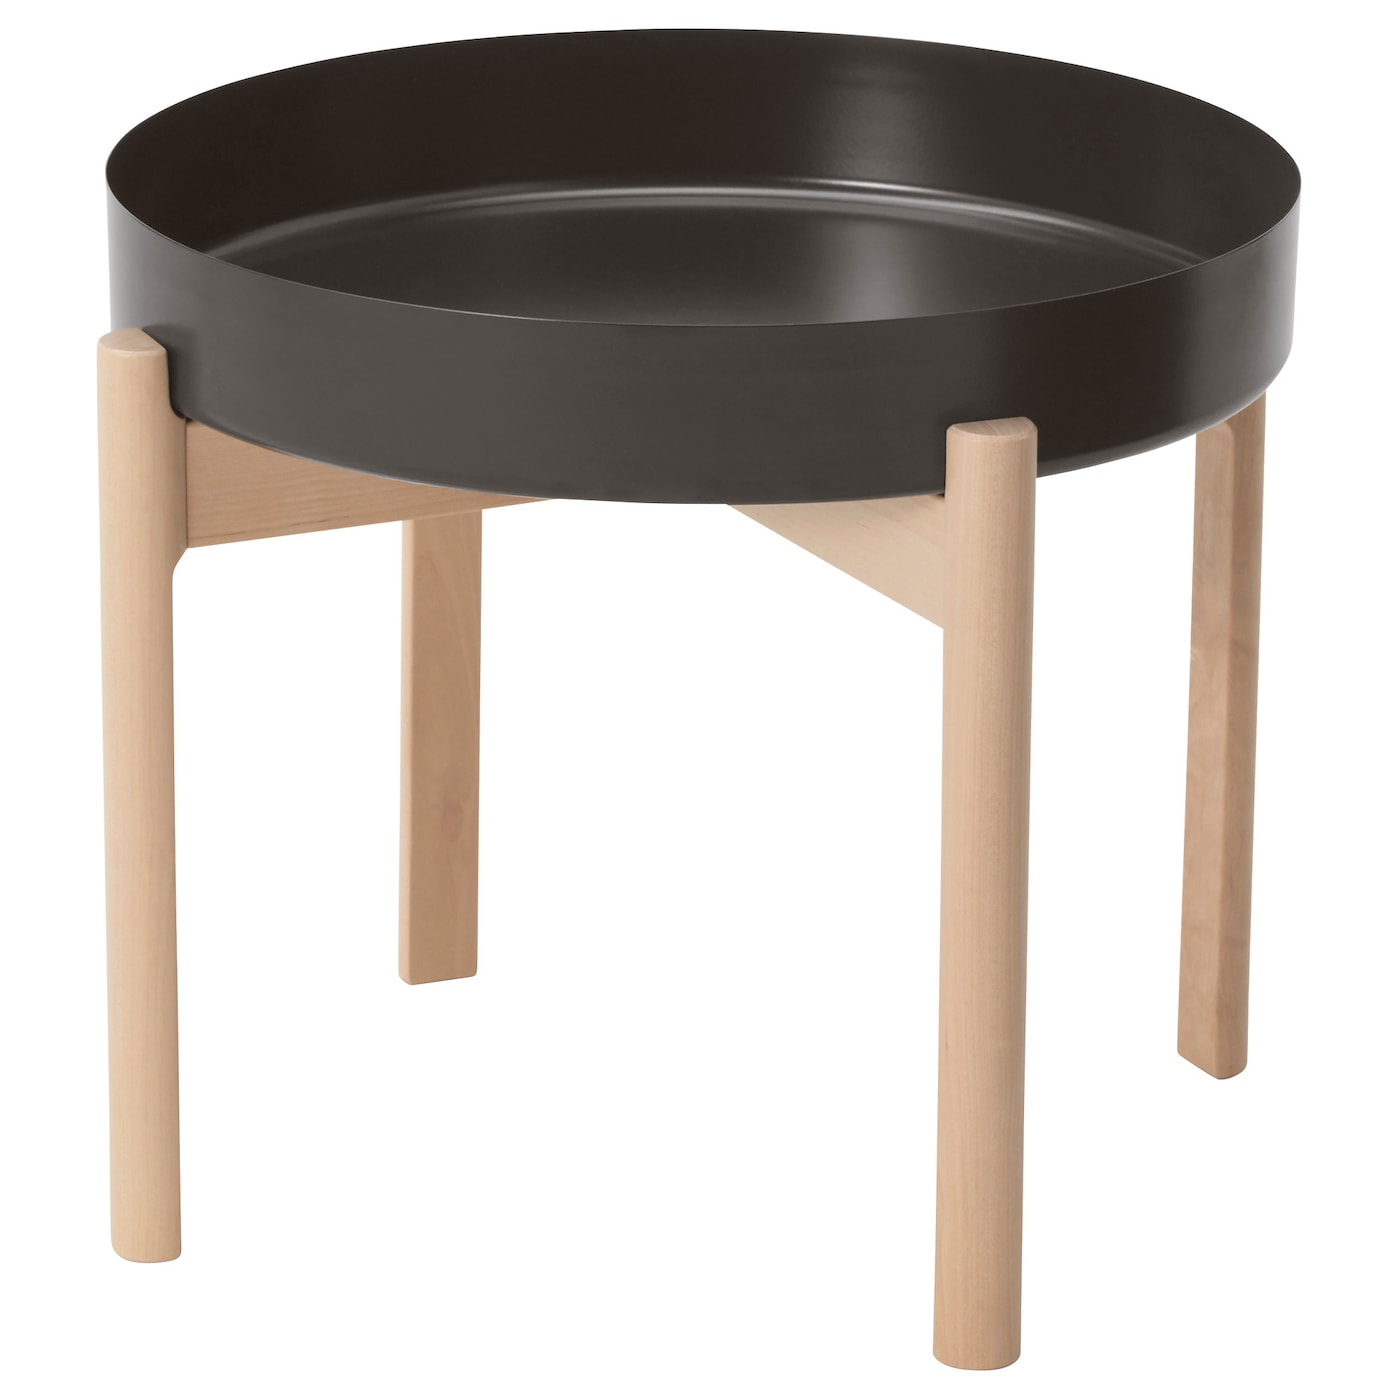 ikea ypperlig coffee table solid birch is a hard wearing natural material - End Tables Ikea